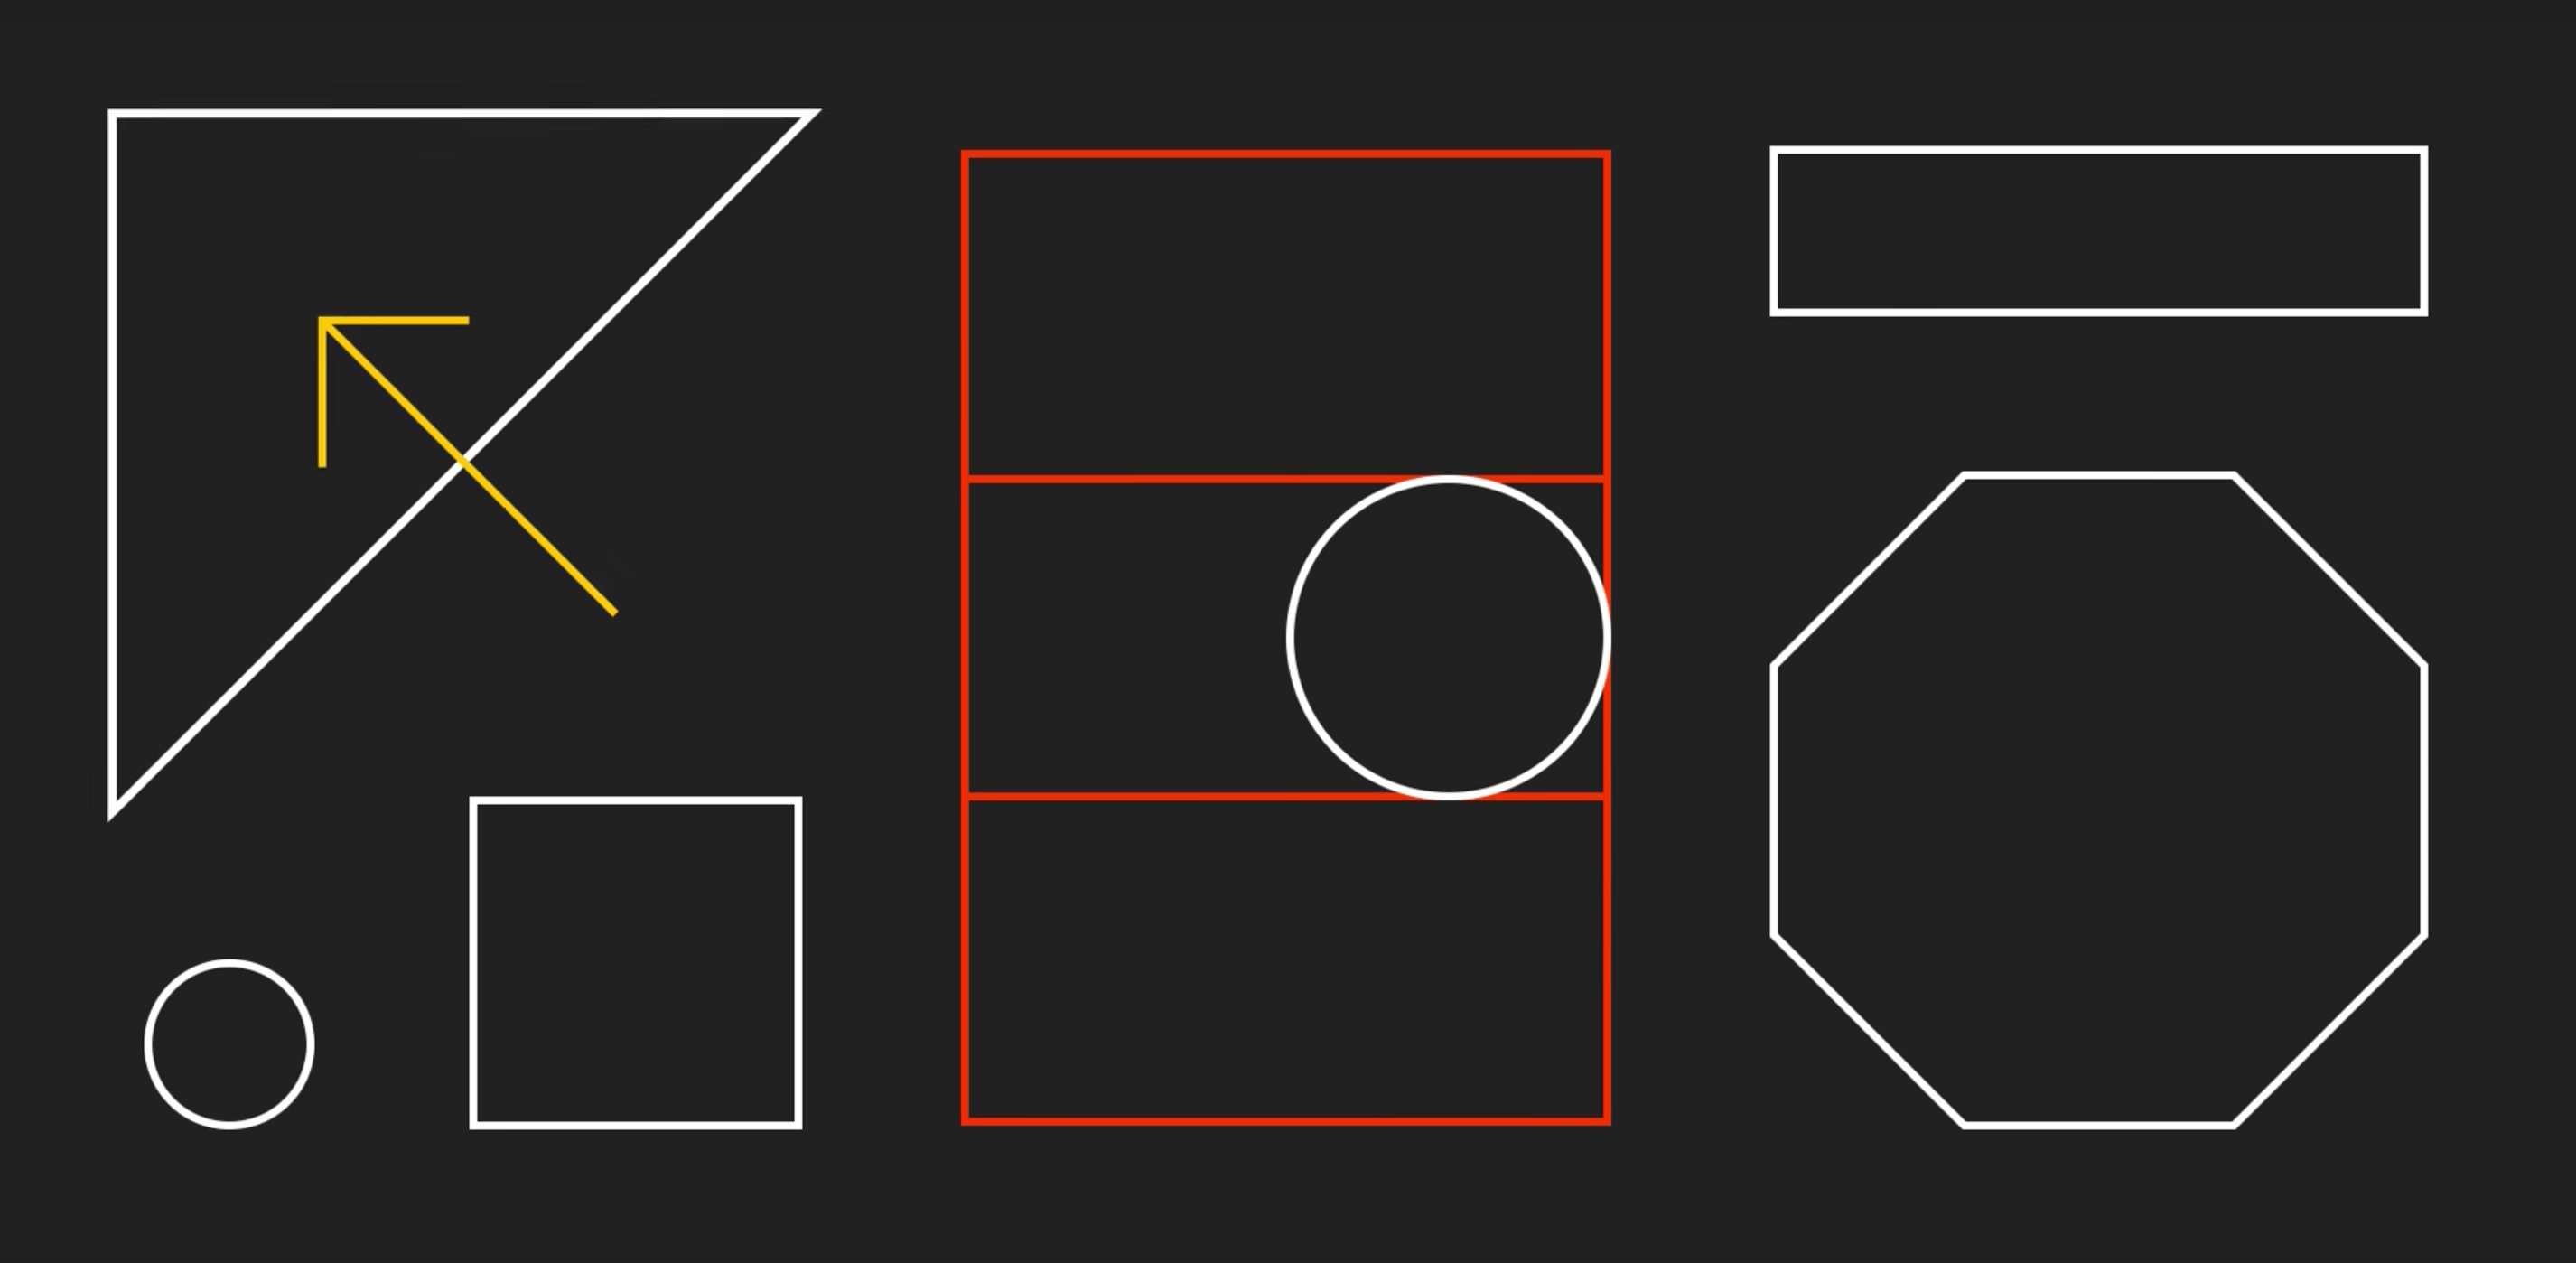 Material Design is a unified system that combines theory, resources, and tools for crafting digital experiences.